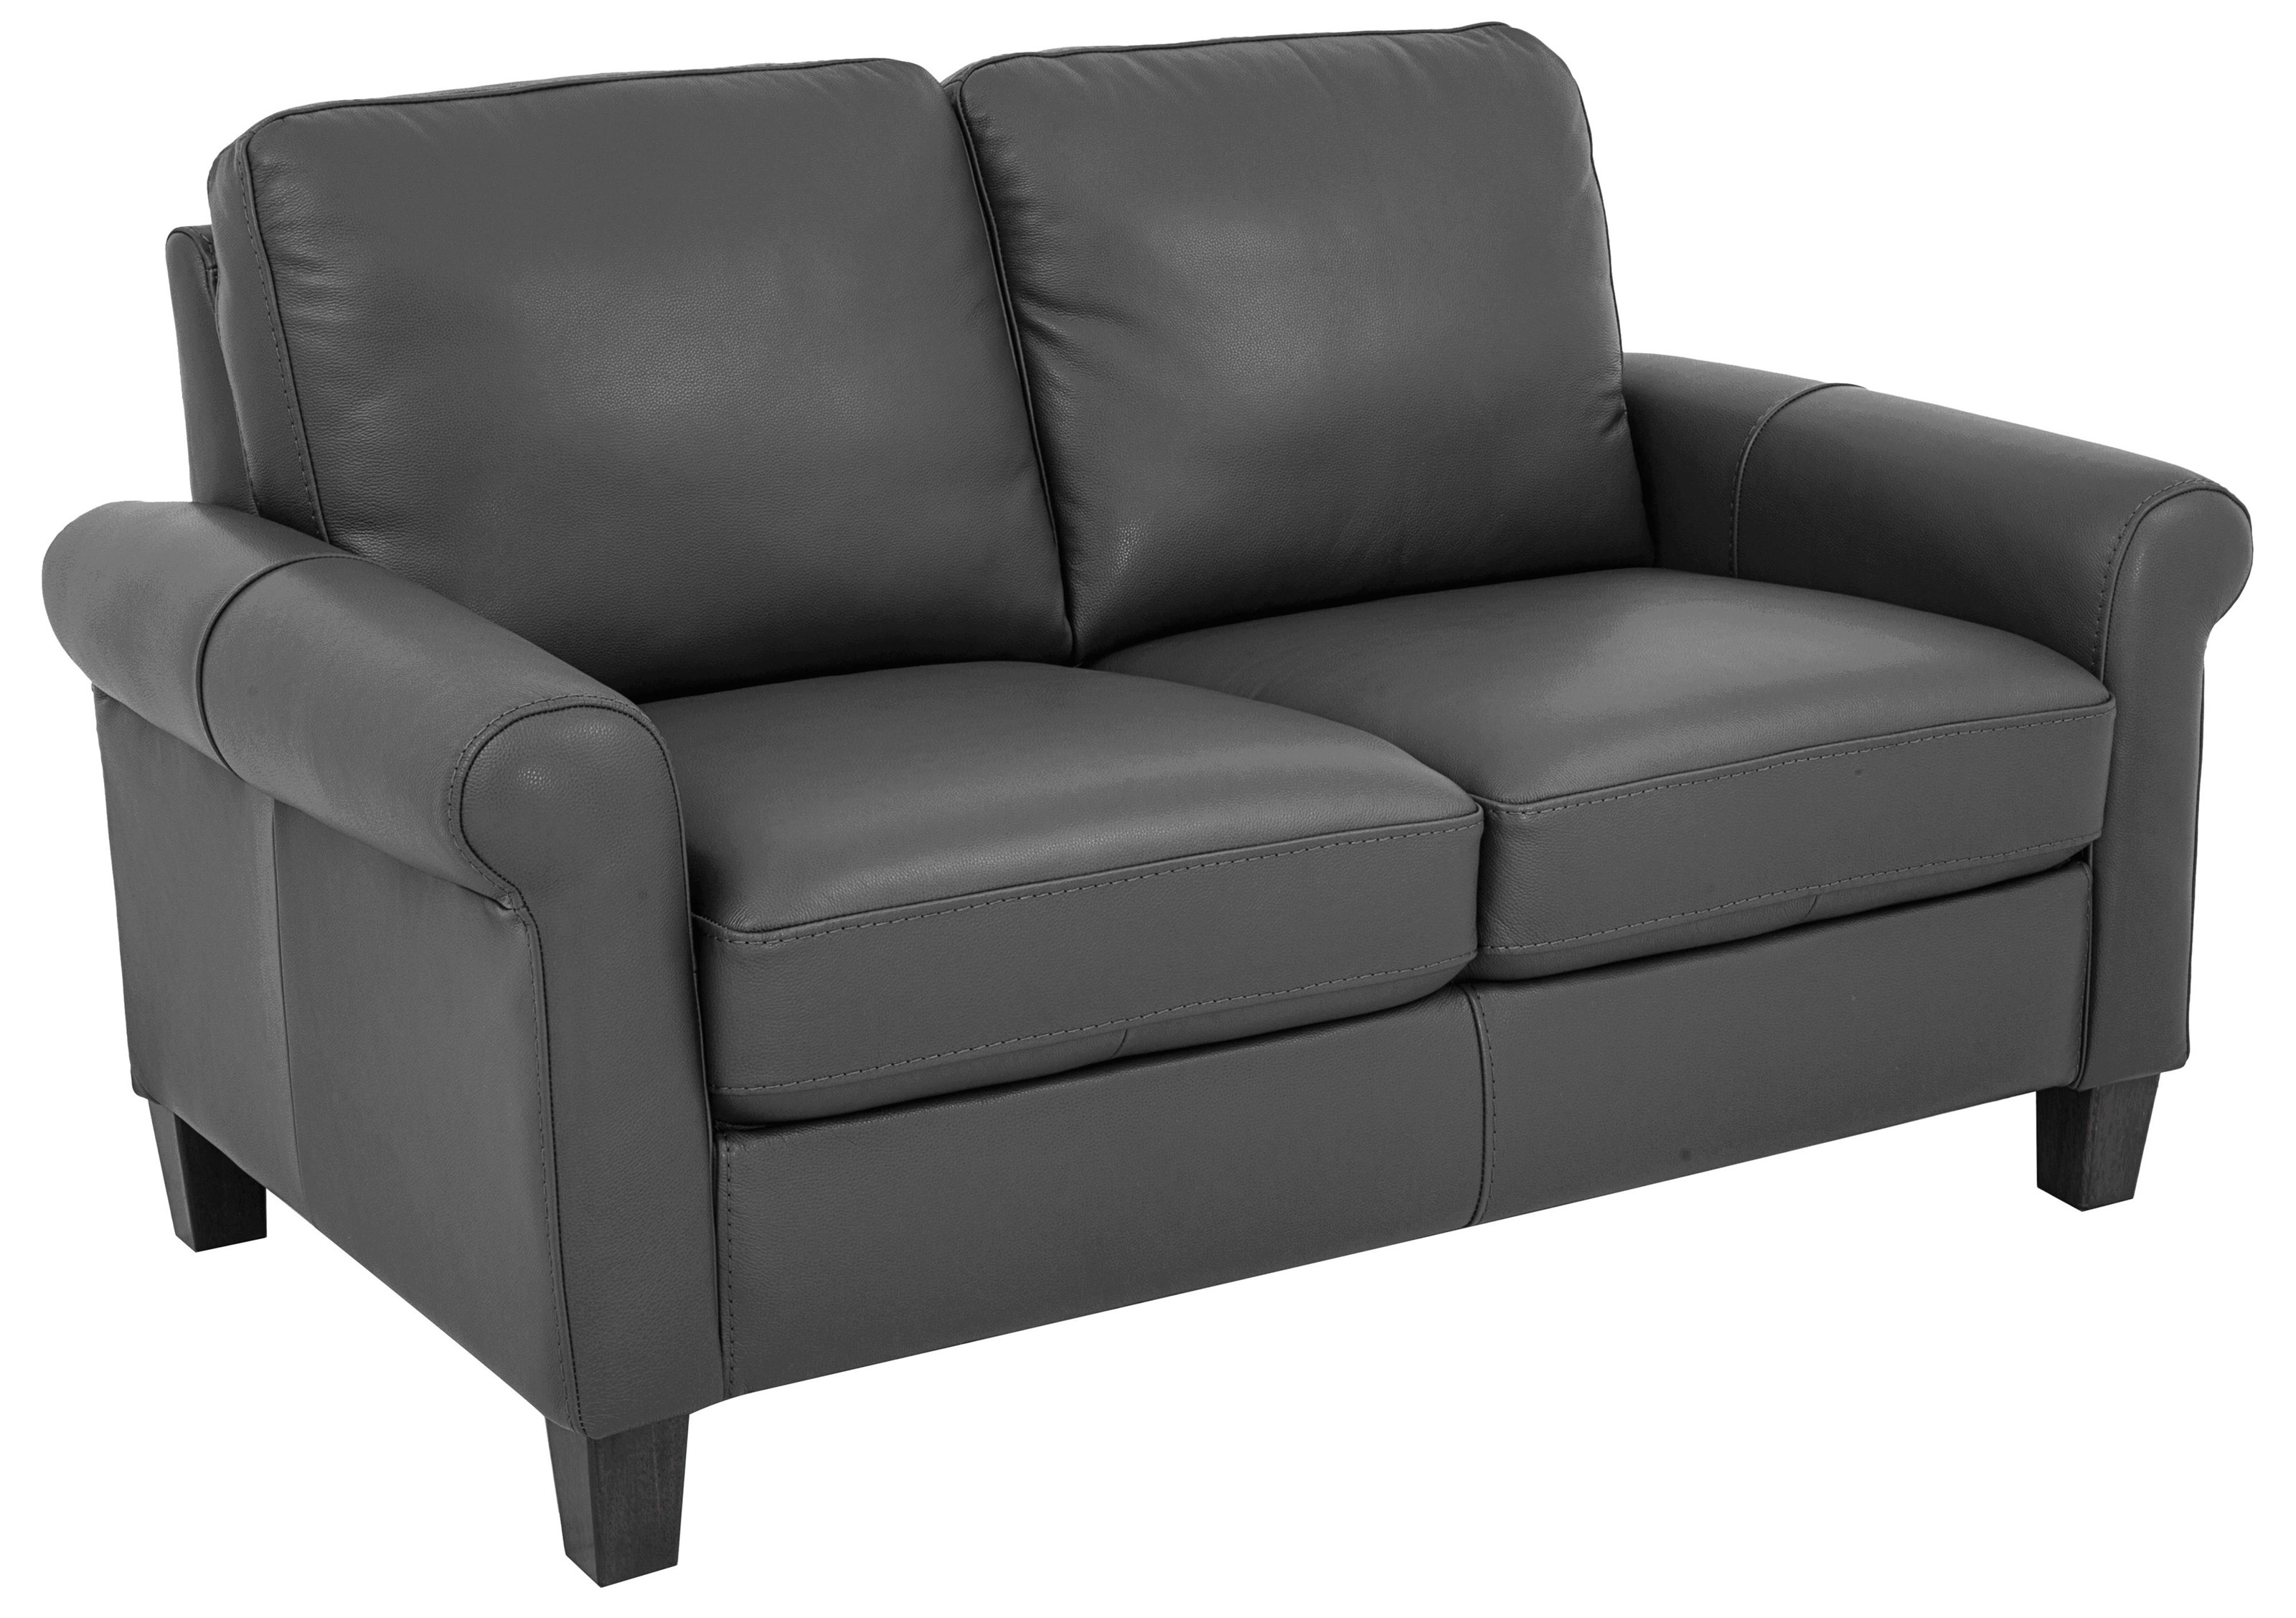 Morris Home Furnishings Dorothy Dorothy Leather-Match* Loveseat - Item Number: 449638094